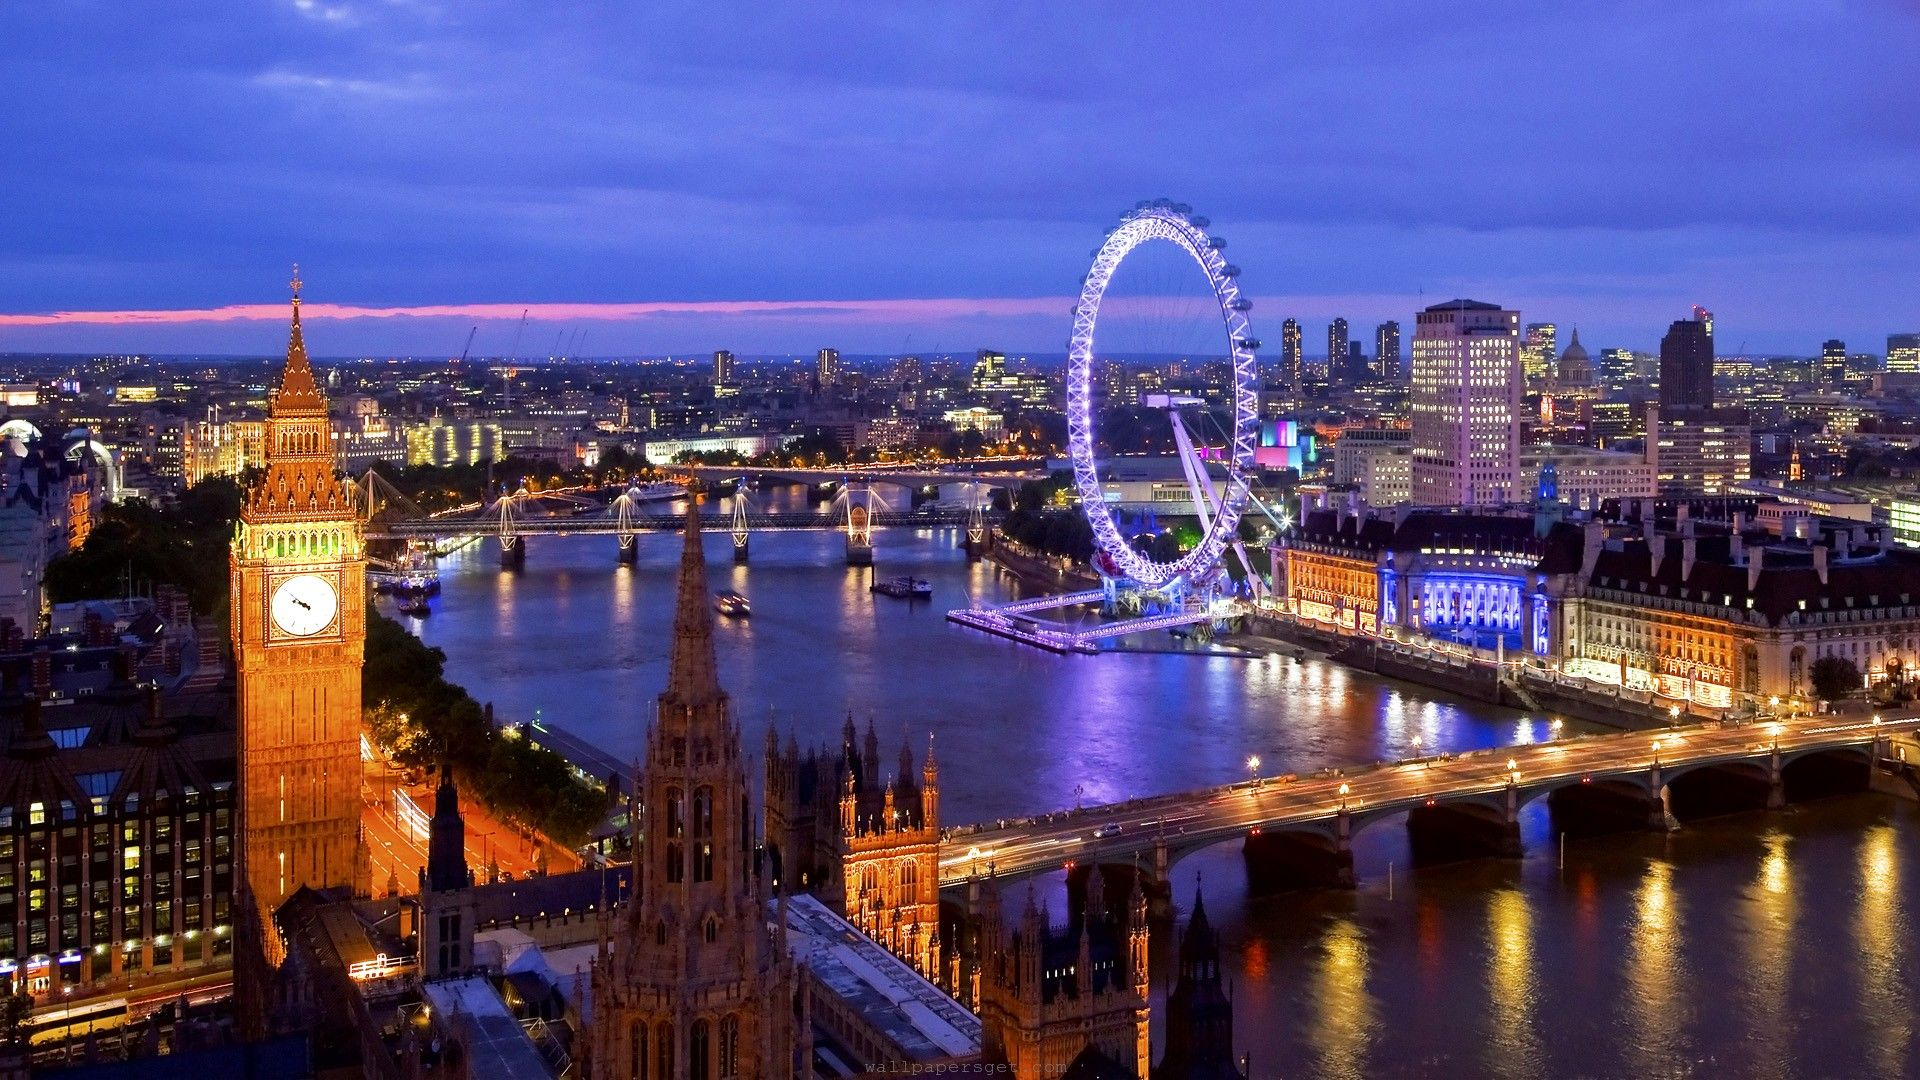 southbank-london-england-capital-port-night-world-landscape